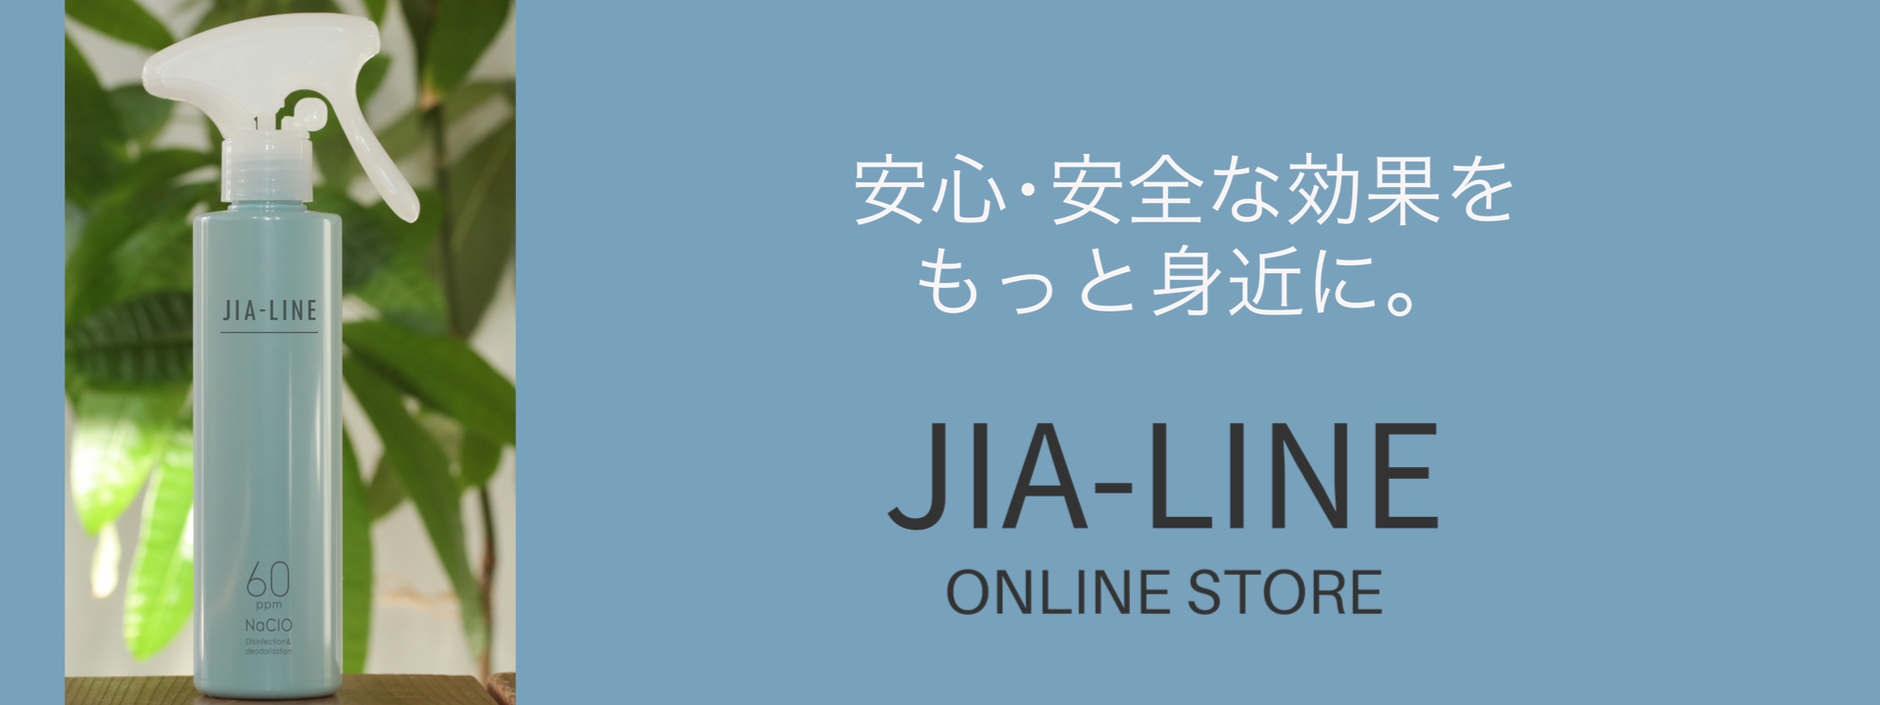 JIA-LINE ONLINE  STORE